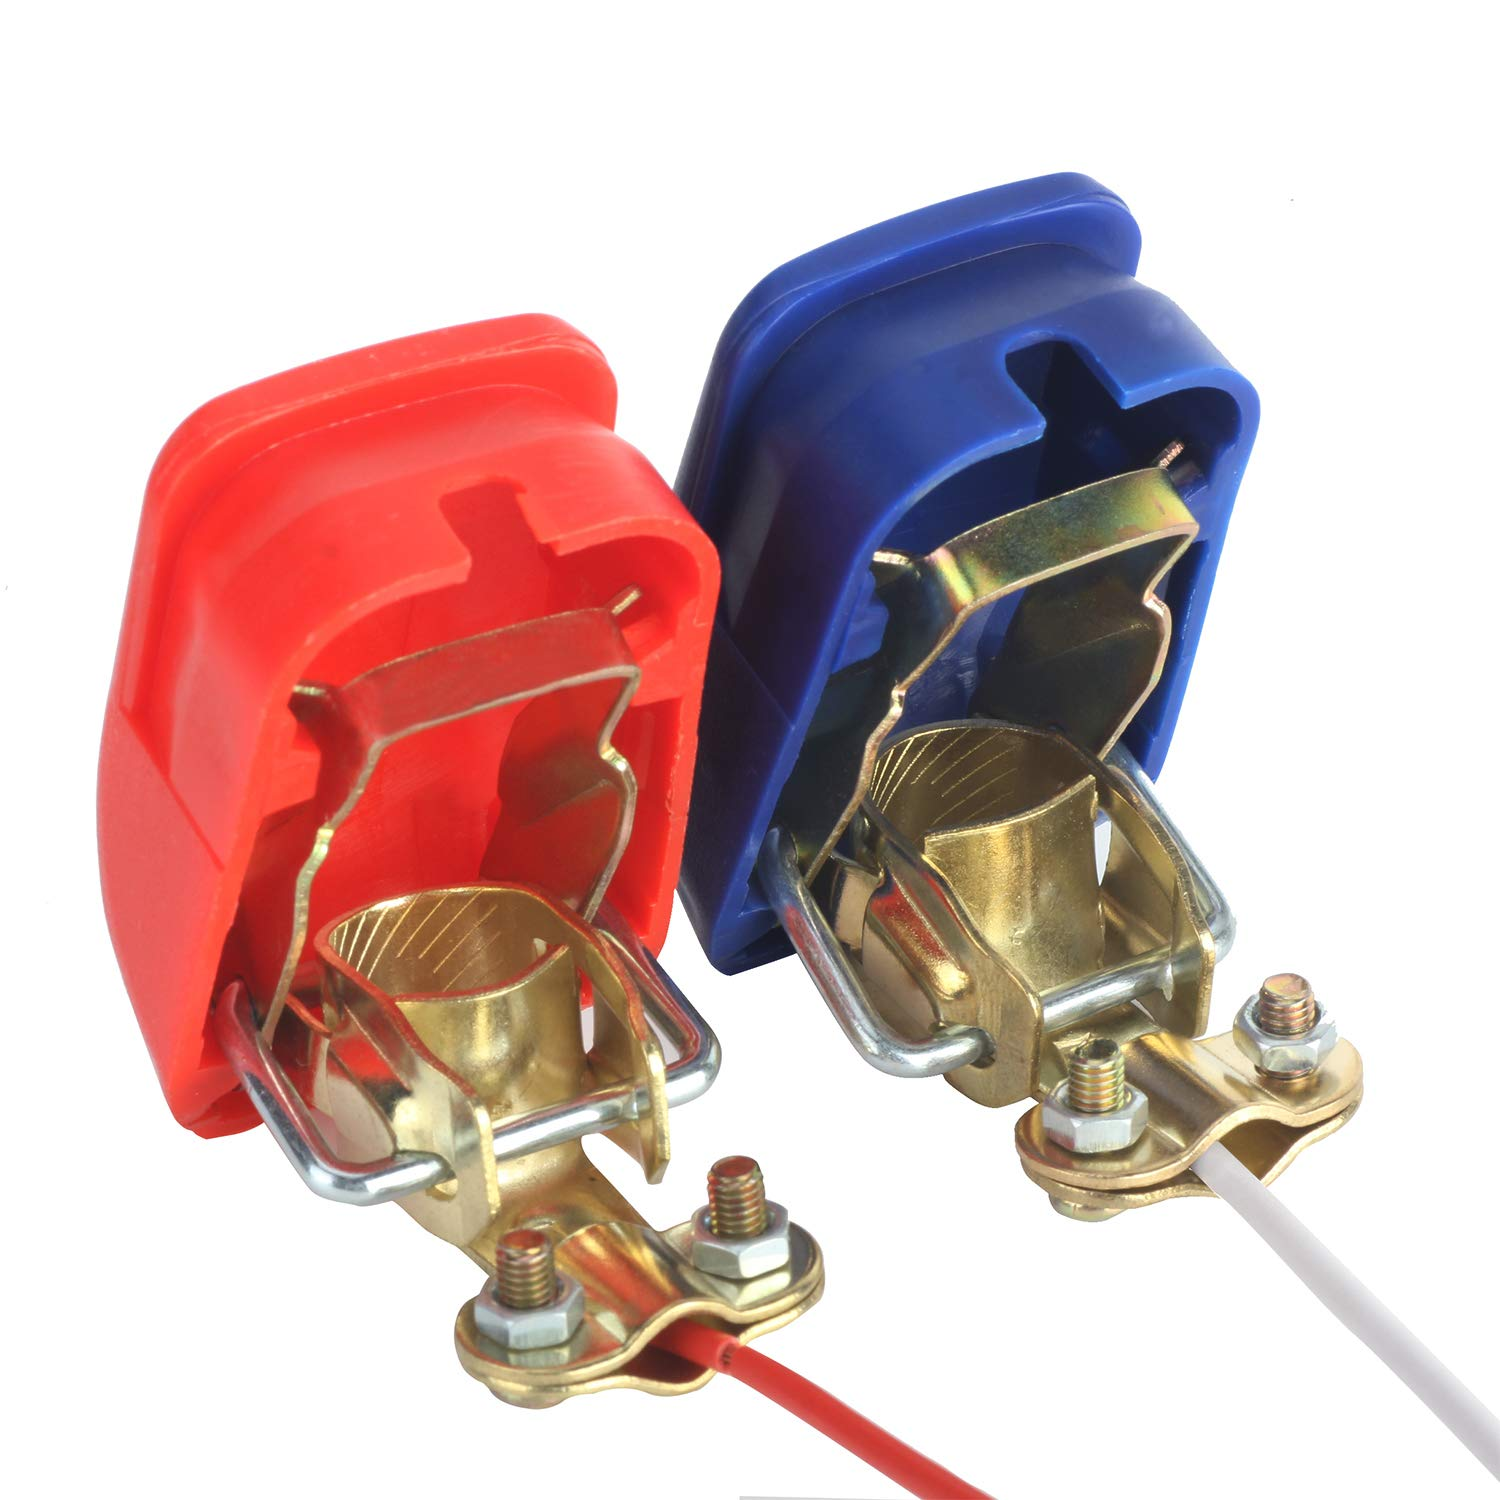 12v Quick Release Battery Terminal Connectors Clamps 4 Pin Header Cn2 Wiring Harness Disconnect Terminals Red Blue Automotive